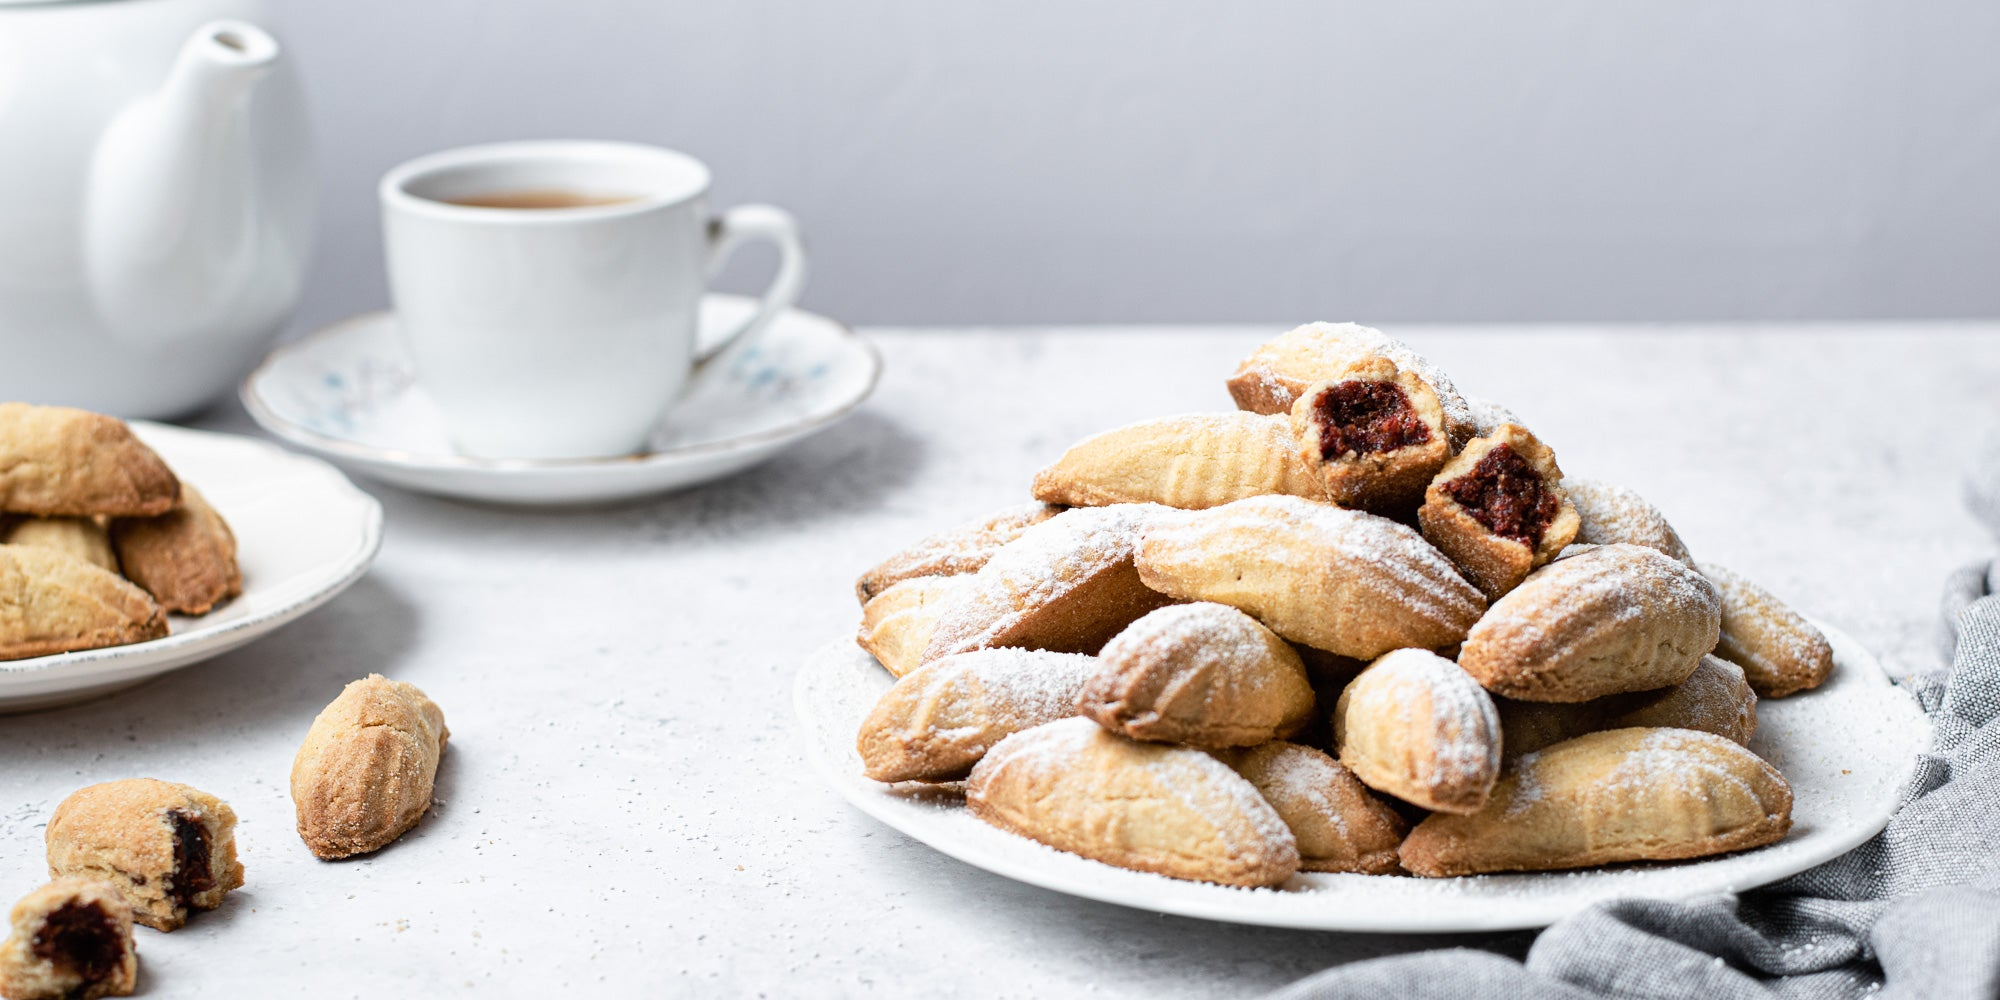 Mamoul cookies dusted with icing sugar, next to a pot of tea